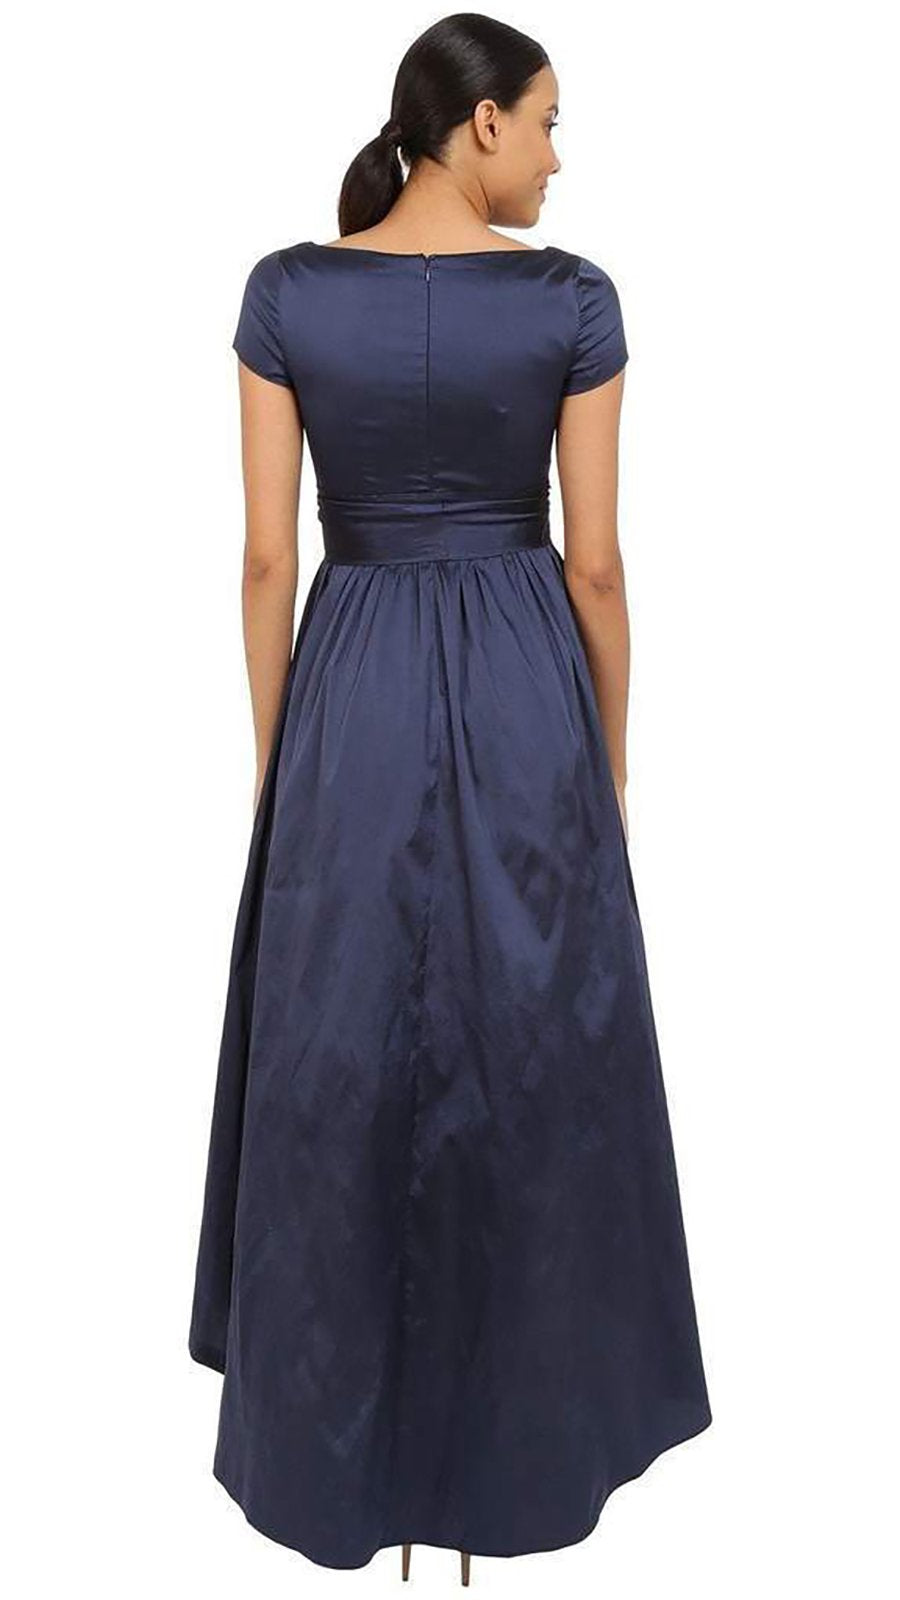 Adrianna Papell V-Neck Ruched Taffeta High-Low Dress 81917430 In Blue